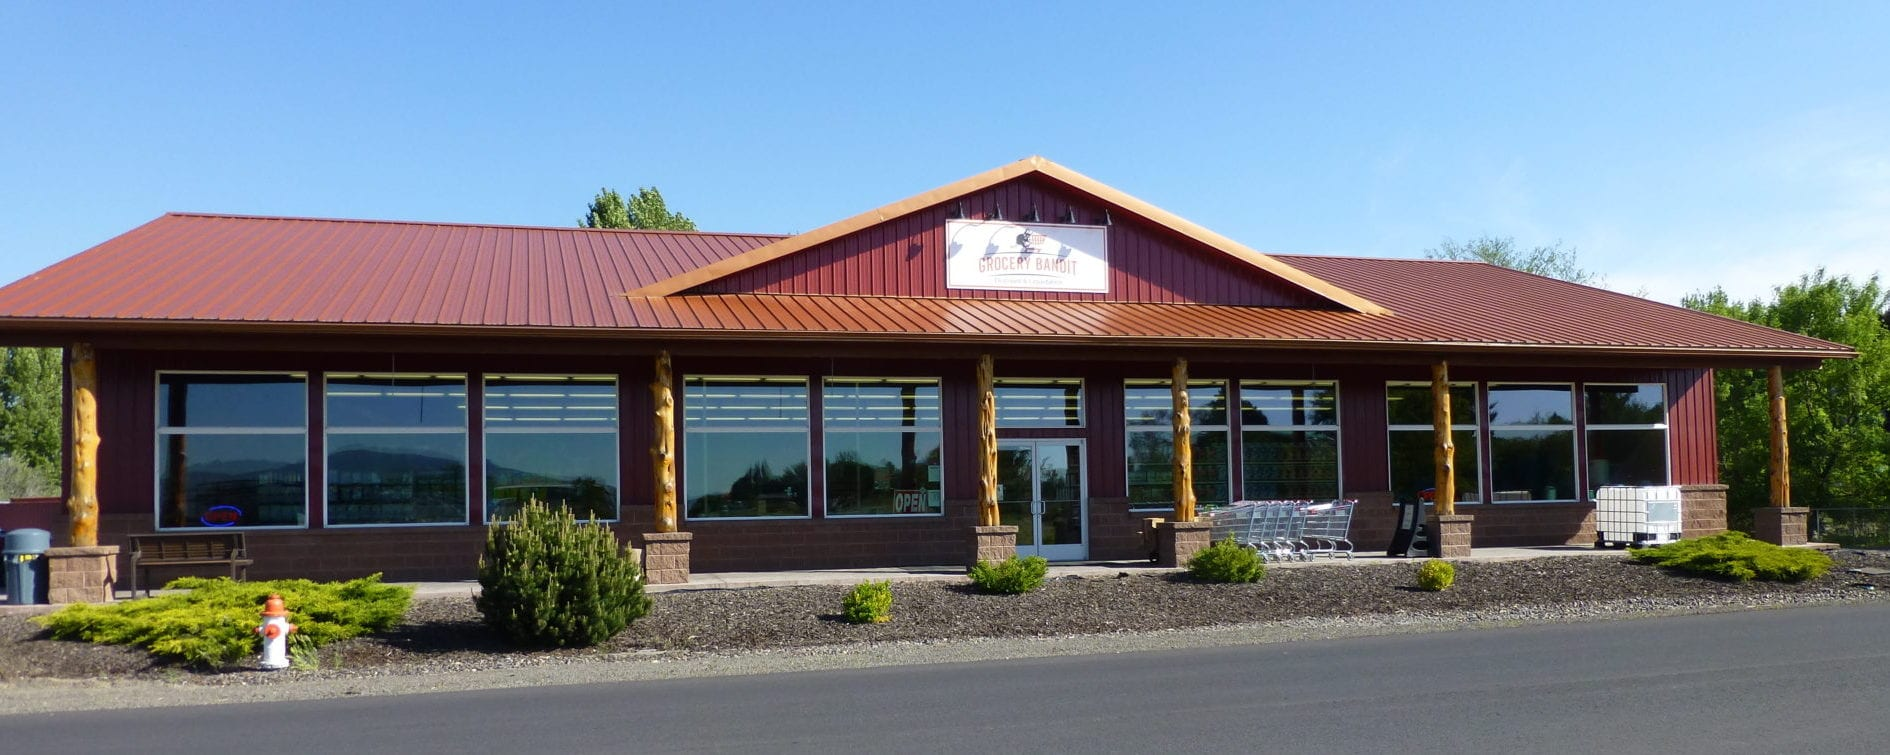 Buy groceries at Grocery Bandit Discount and Liquidation, Prineville Oregon